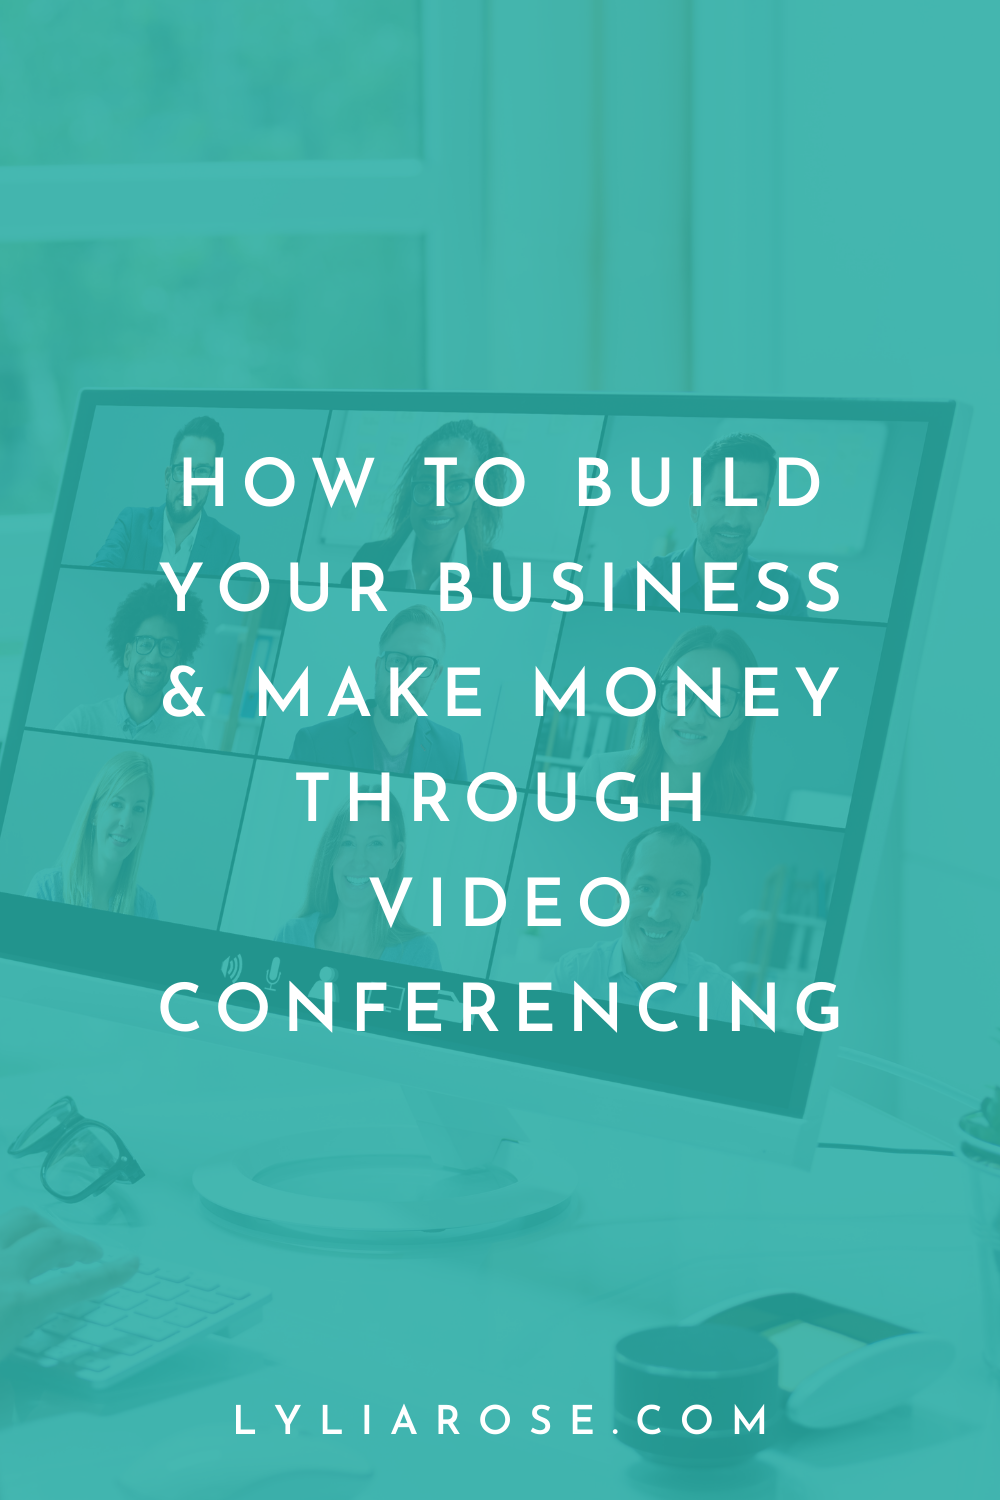 How your small business can use video conferencing to make money